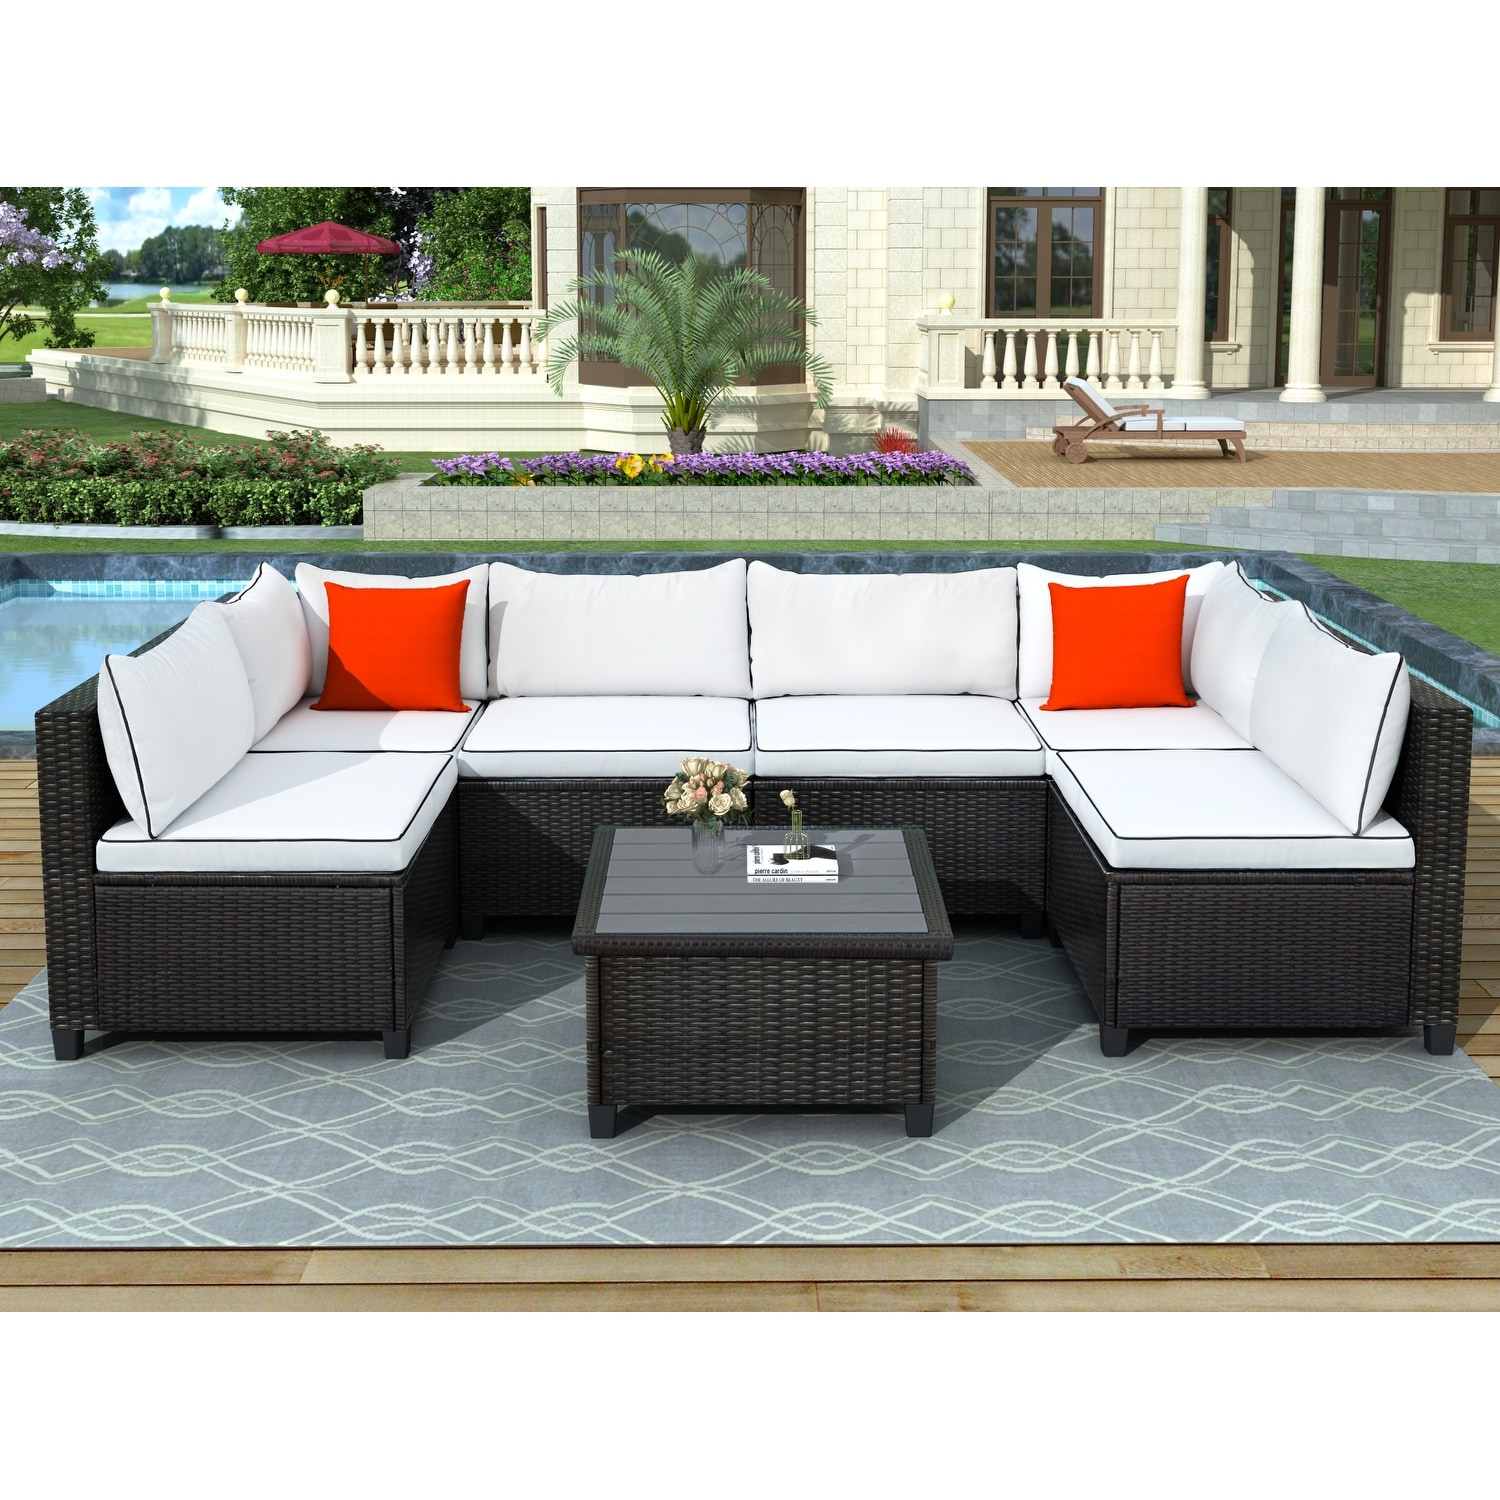 nestfair u shape sectional outdoor furniture set with cushions and accent pillows